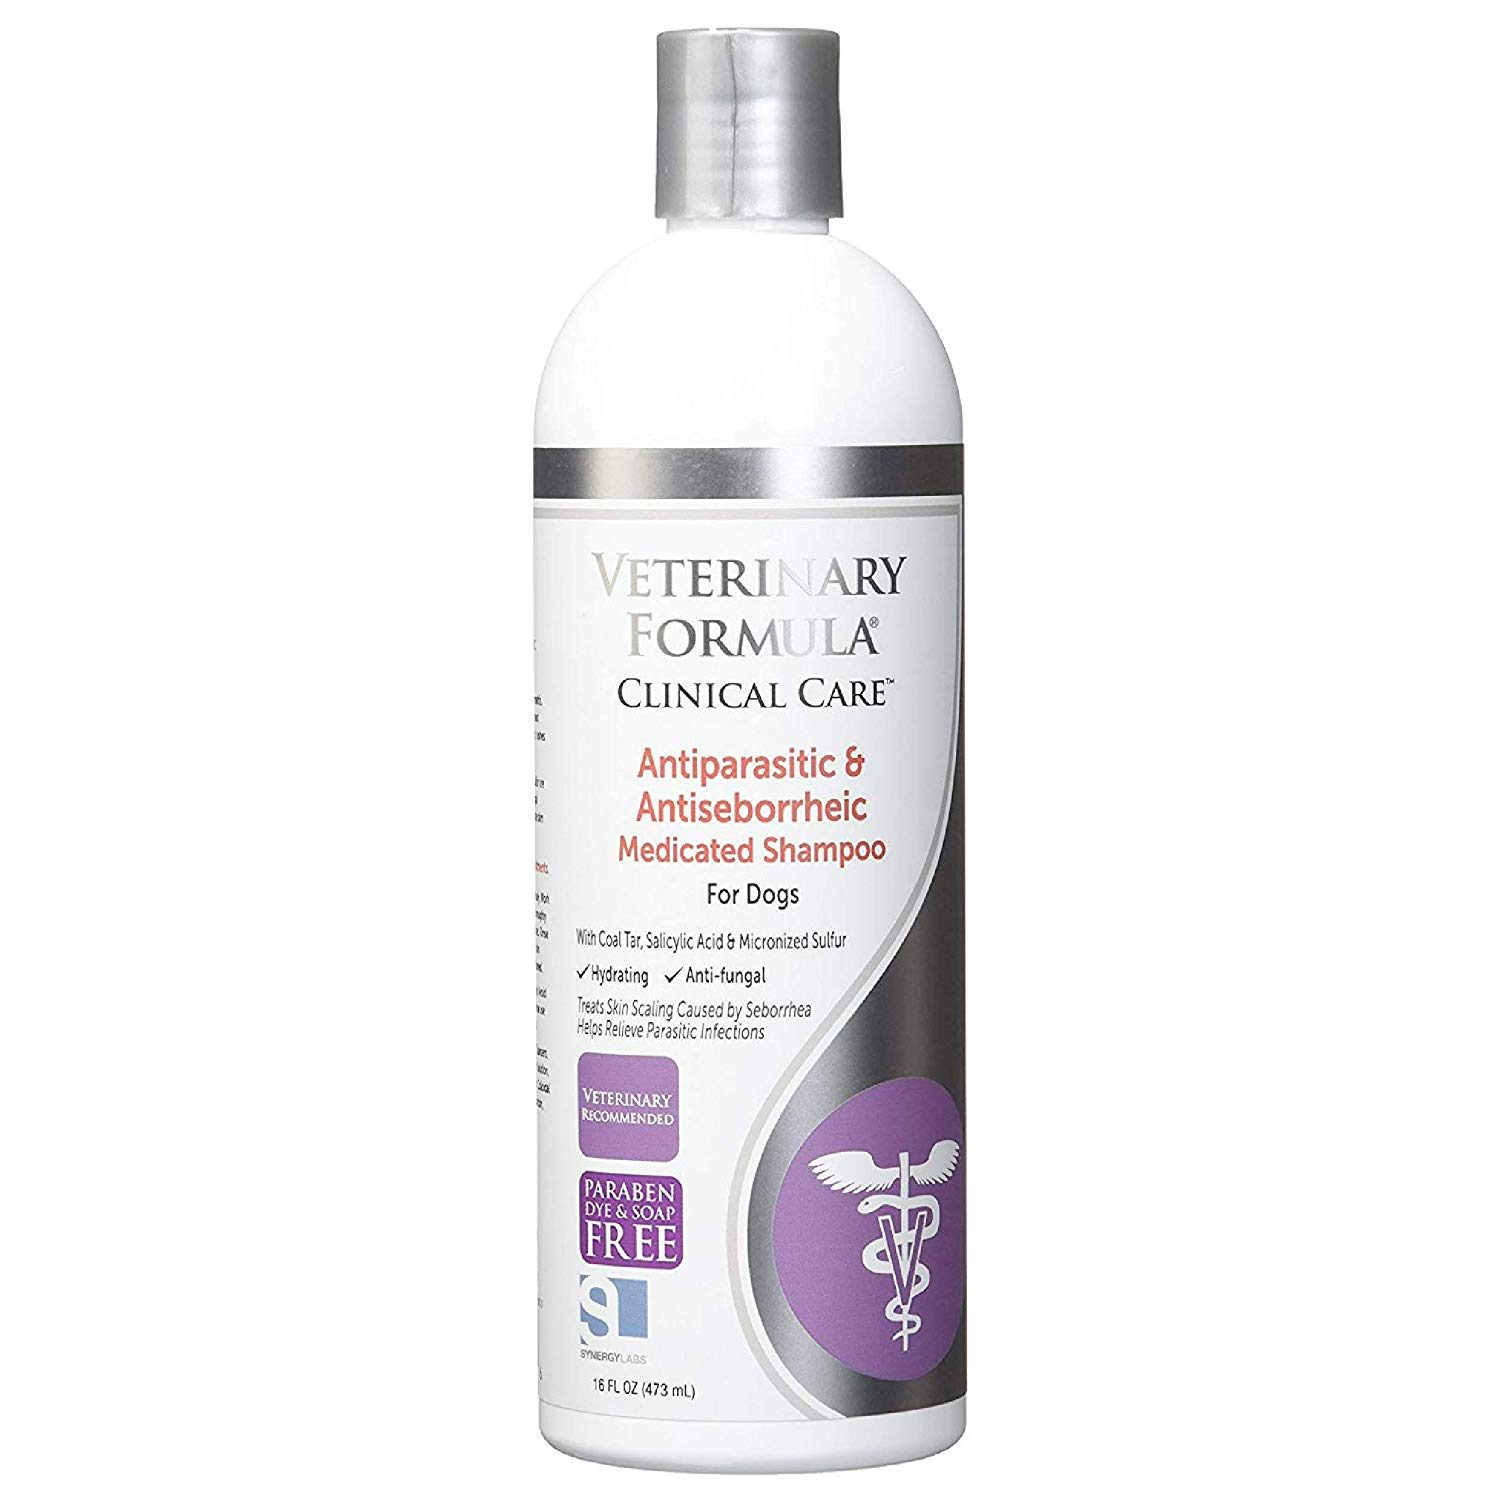 veterinary formula dog shampoo